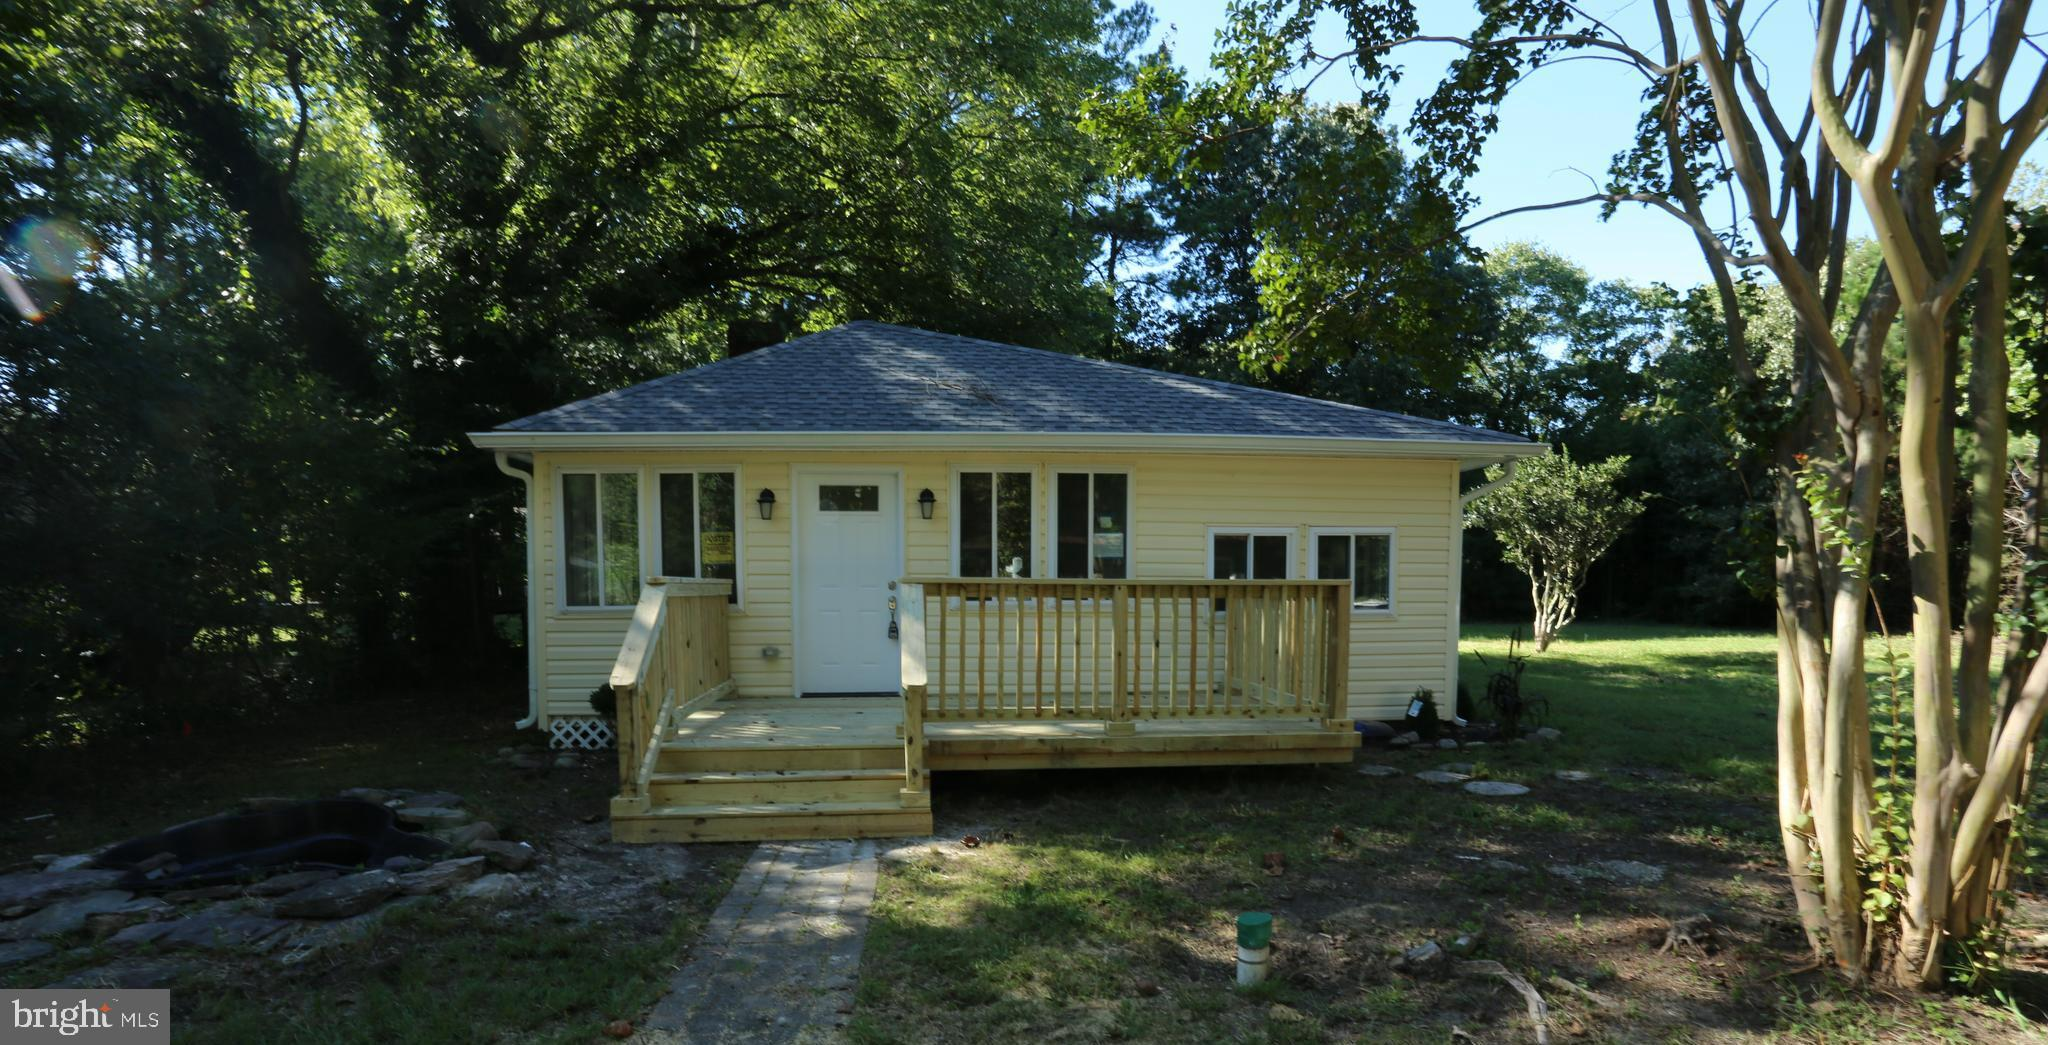 Completely  remodeled bungalow/cottage with all new central a/c, new roof, siding, windows, gutters, appliances, flooring, bathrooms, kitchen, wiring, plumbing.  Home is on holding tank. 3 Bedroom, 1 bath cottage with water views.  open floor plan; New deck ; Detached Garage on over 1/2 acre (.57). Verify flood insurance. Seller financing will be considered with acceptable down payment.